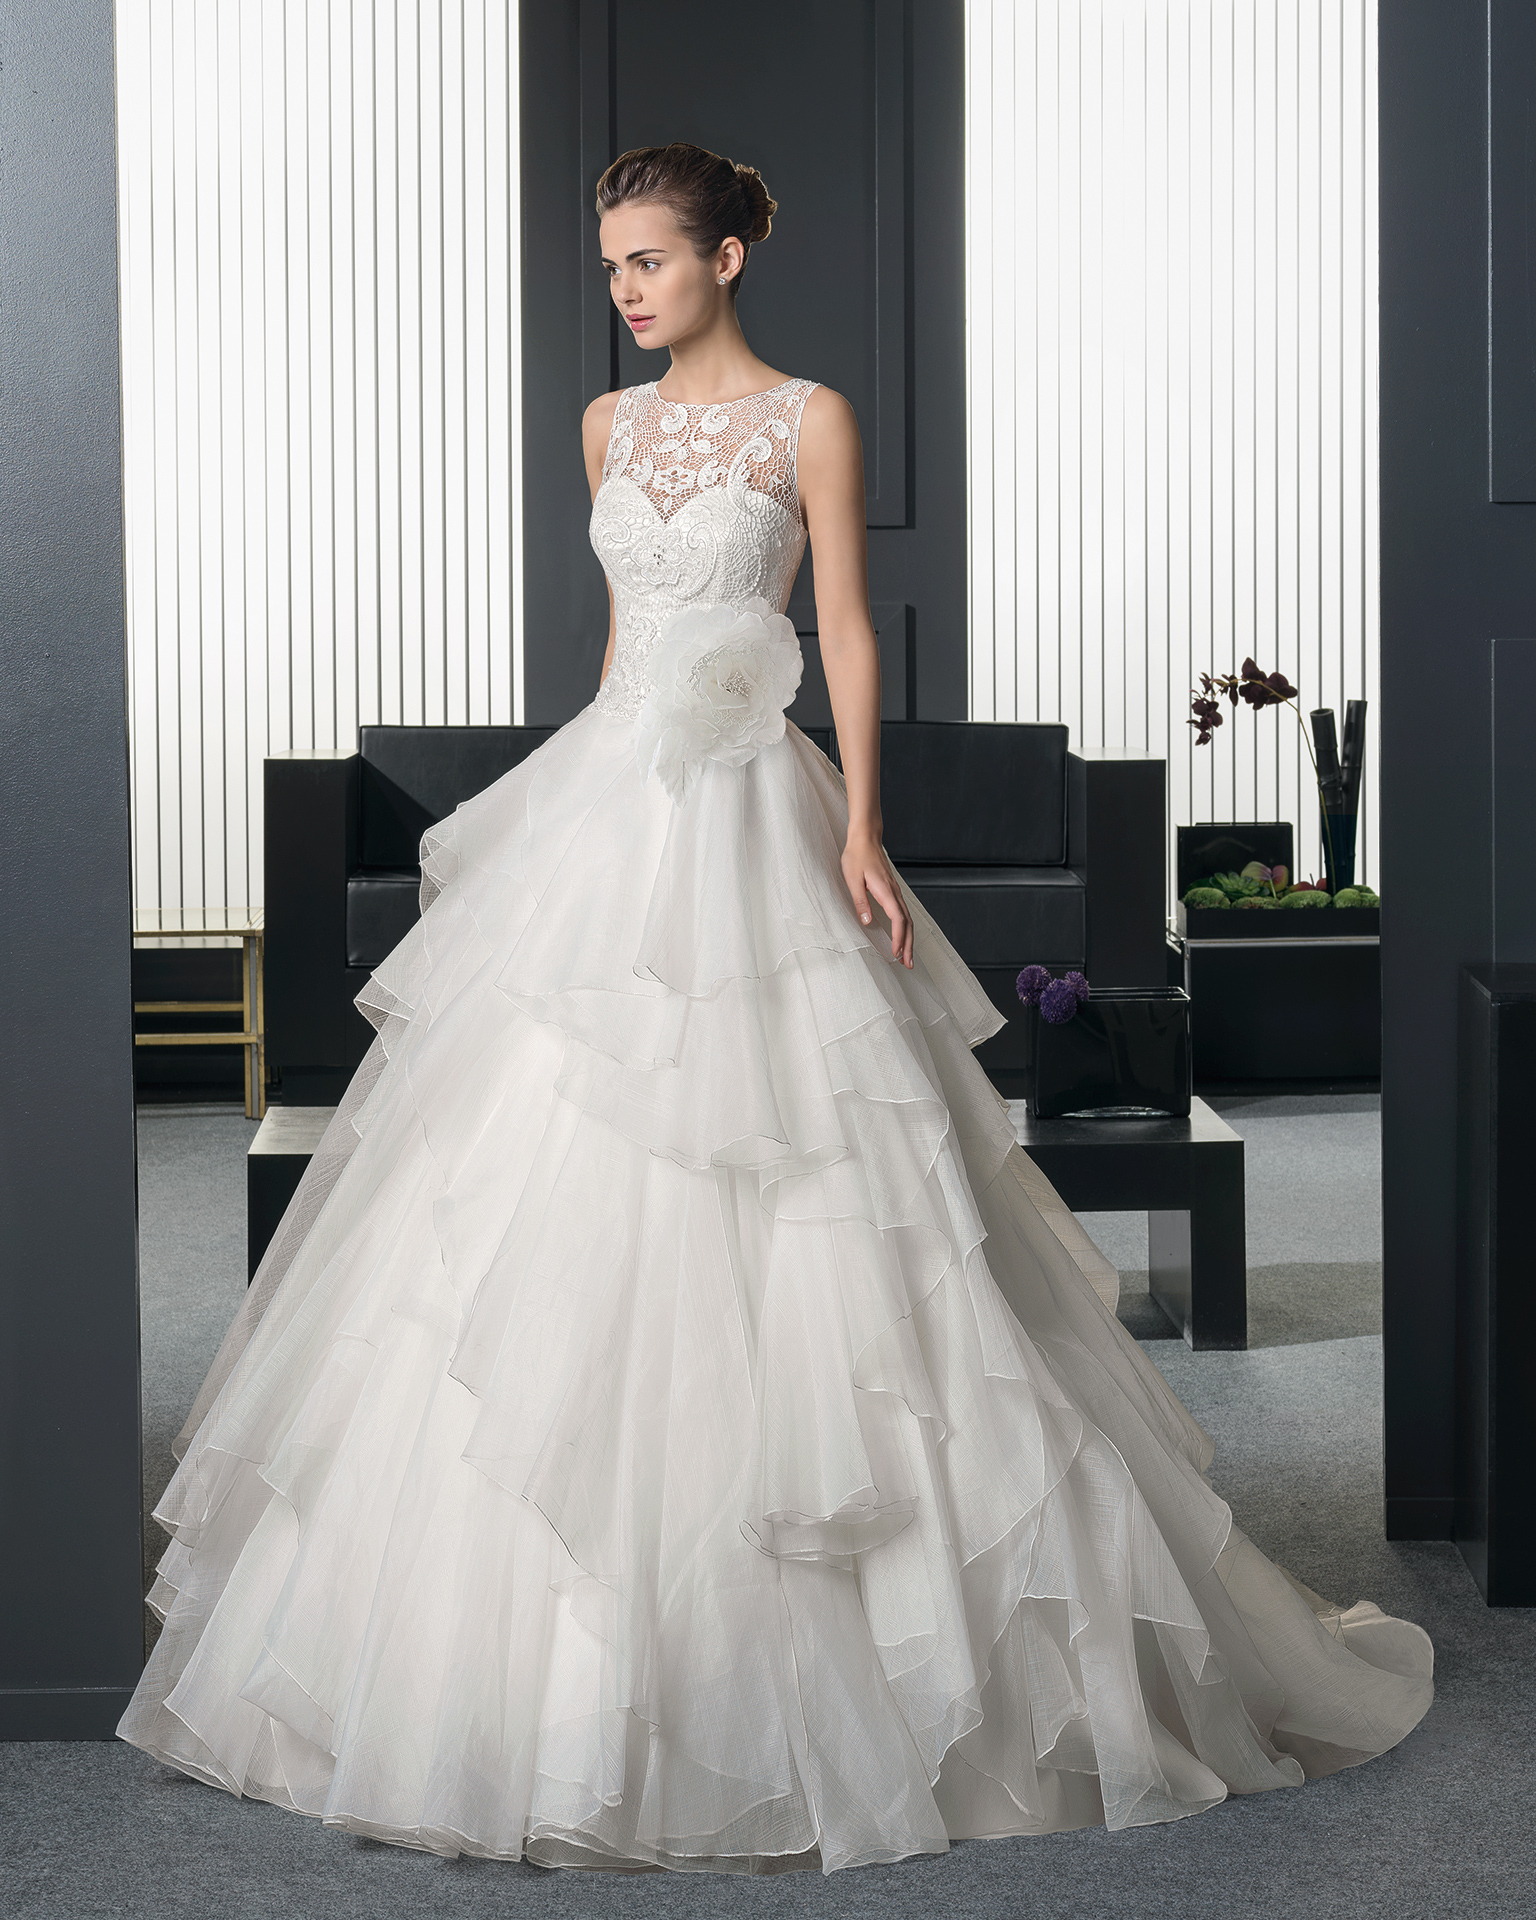 two rosa clara wedding dresses collection part iii 2 wedding dress rosa clara wedding dresses 4 nz